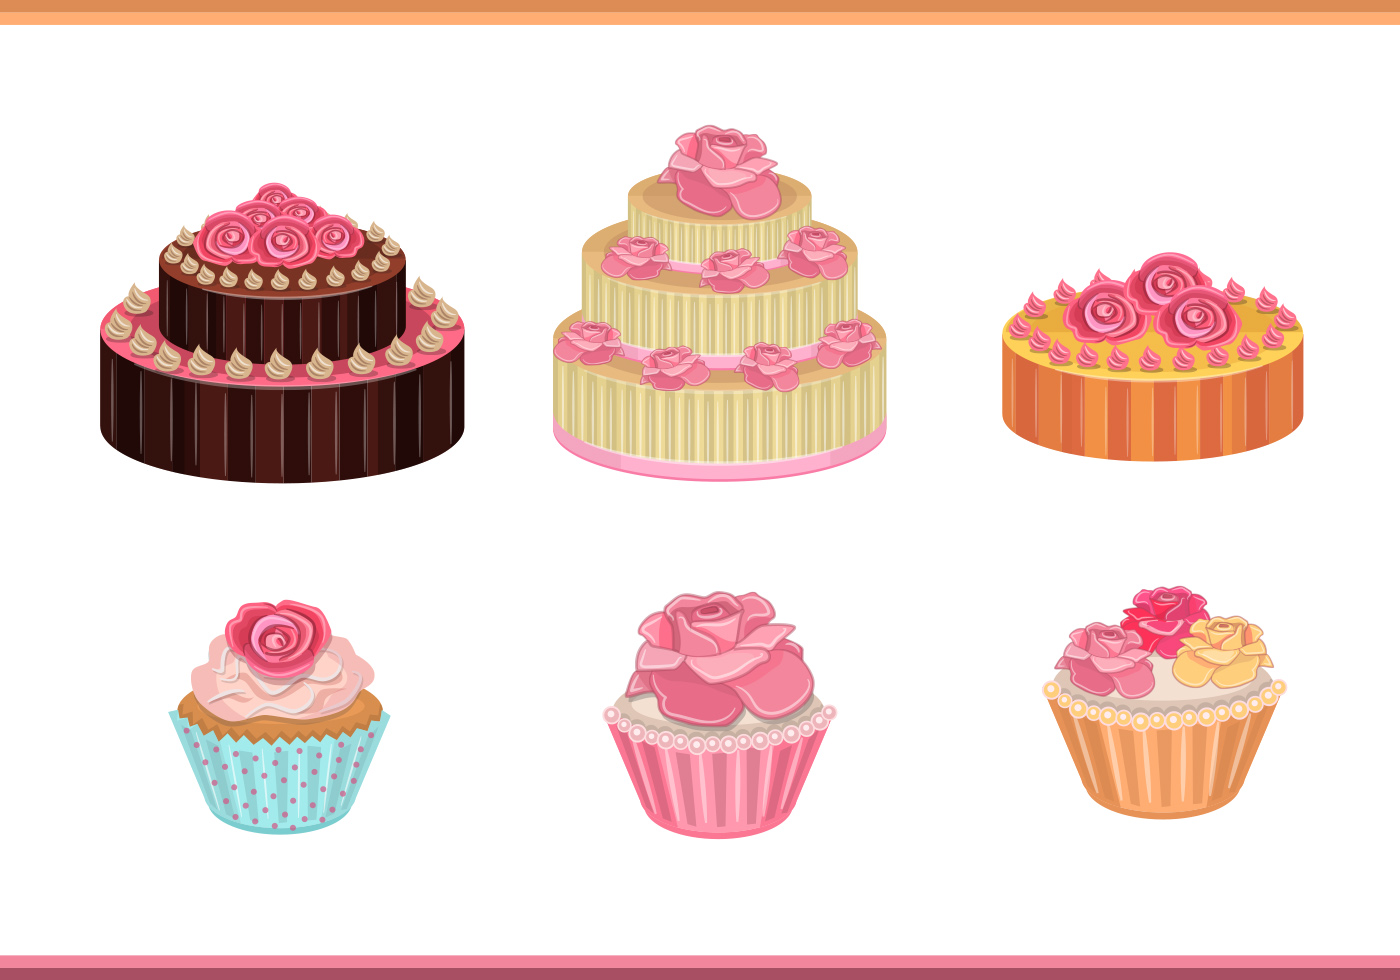 Cake With Roses Vectors Download Free Vector Art Stock